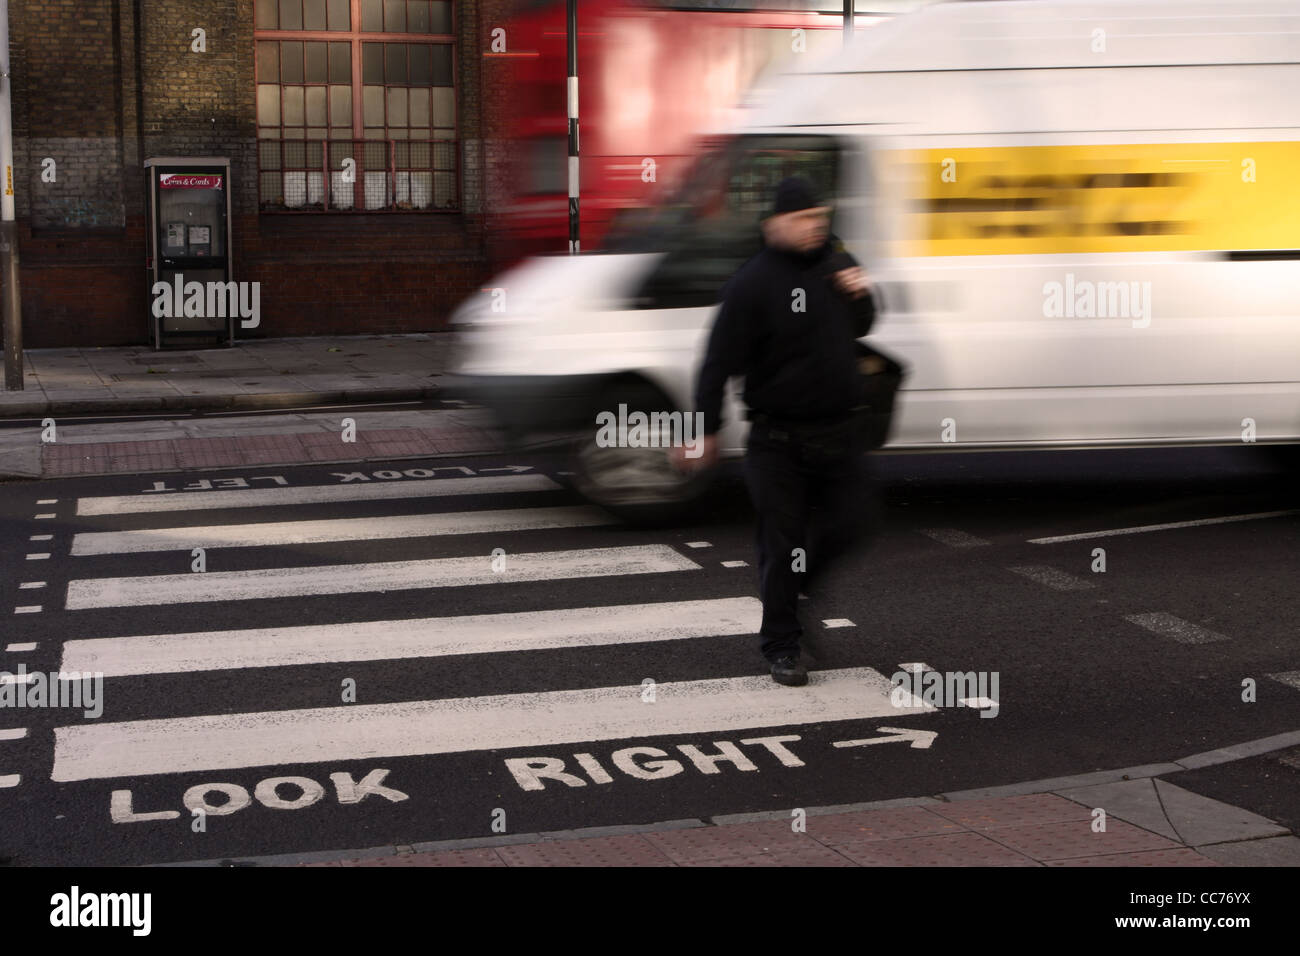 a blurred figure of a man walks across a zebra crossing in London while a van passes behind Stock Photo